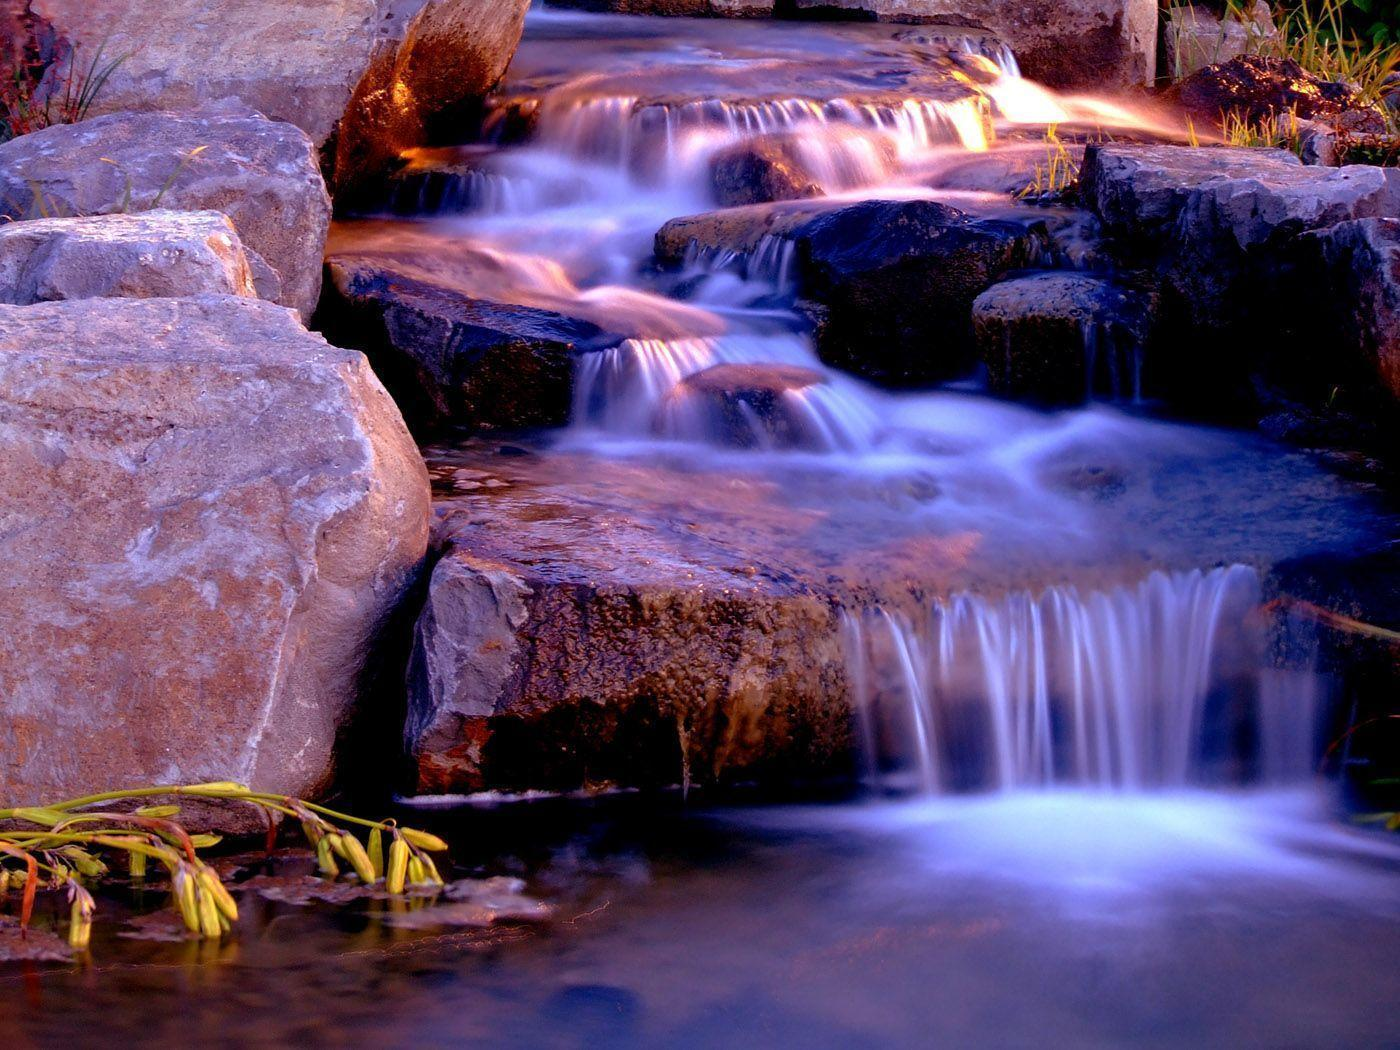 spring natural scenery hd - photo #47